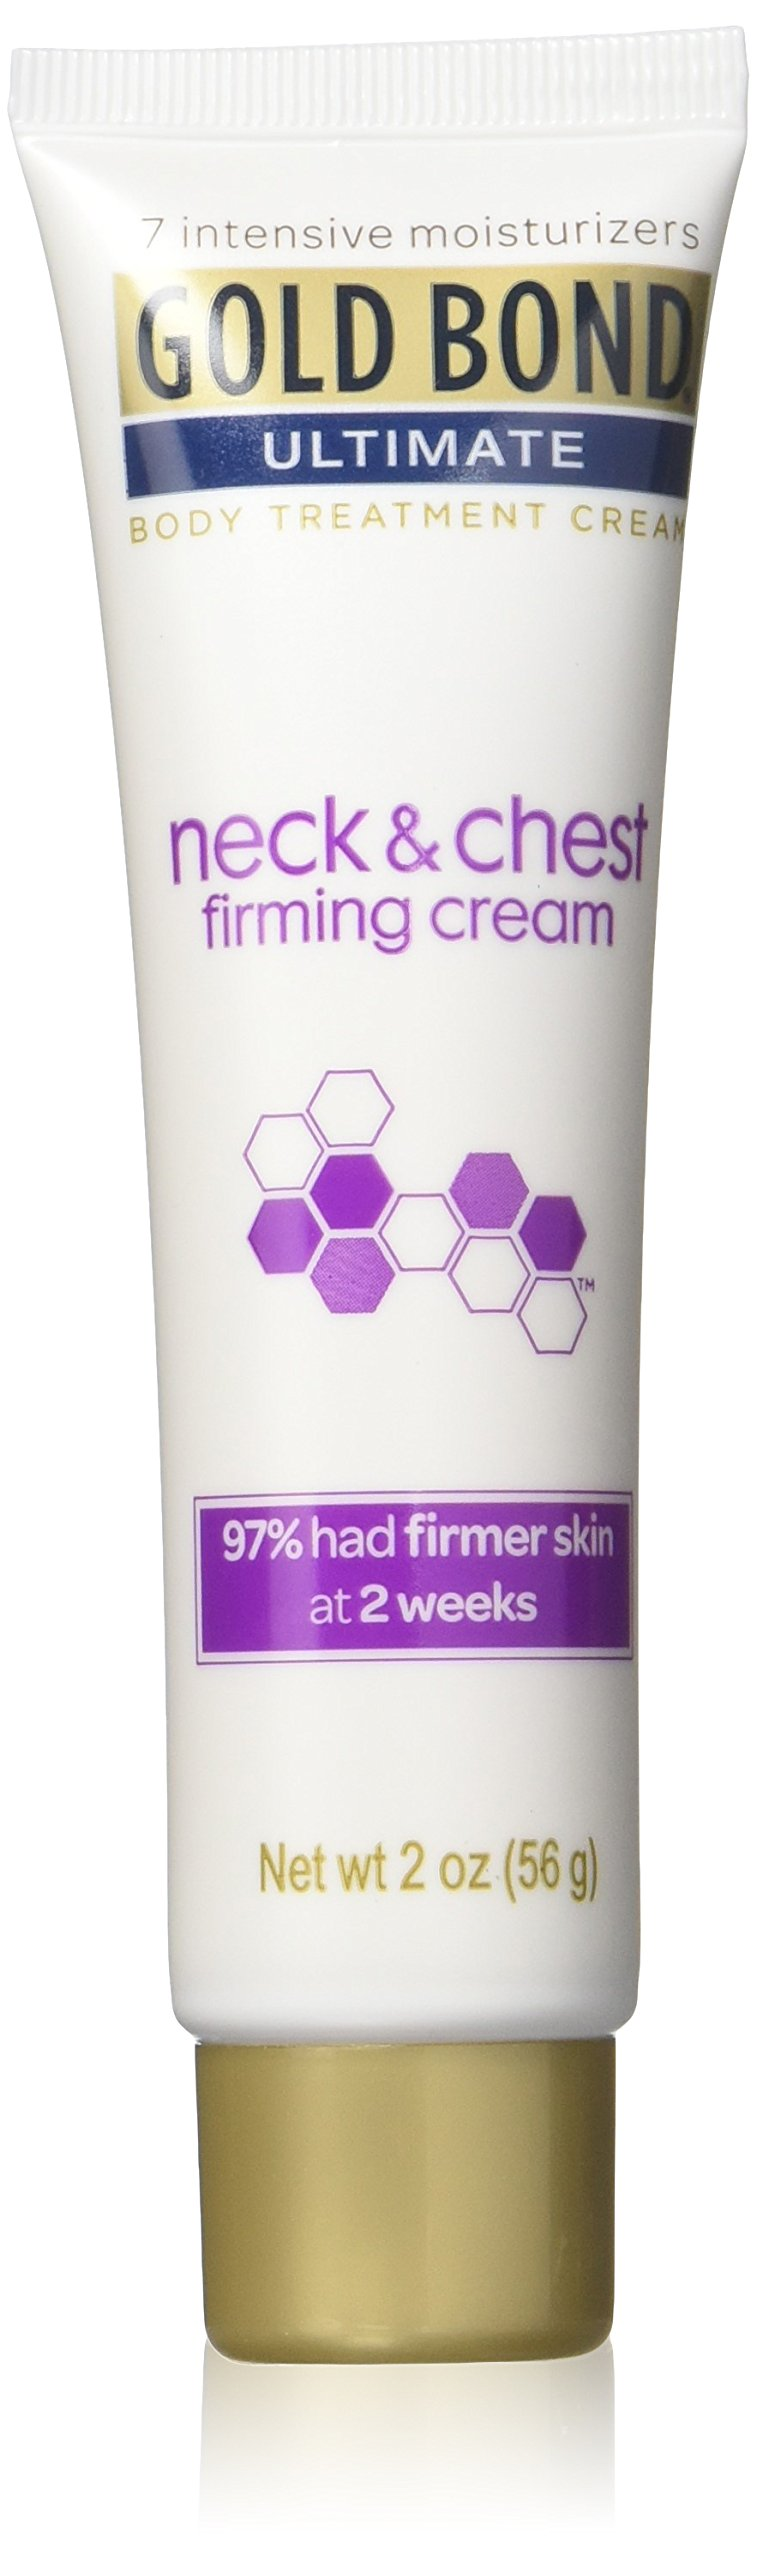 Gold Bond Ultimate Firming Neck & Chest Cream - 2 Oz (pack of 2) by Gold Bond